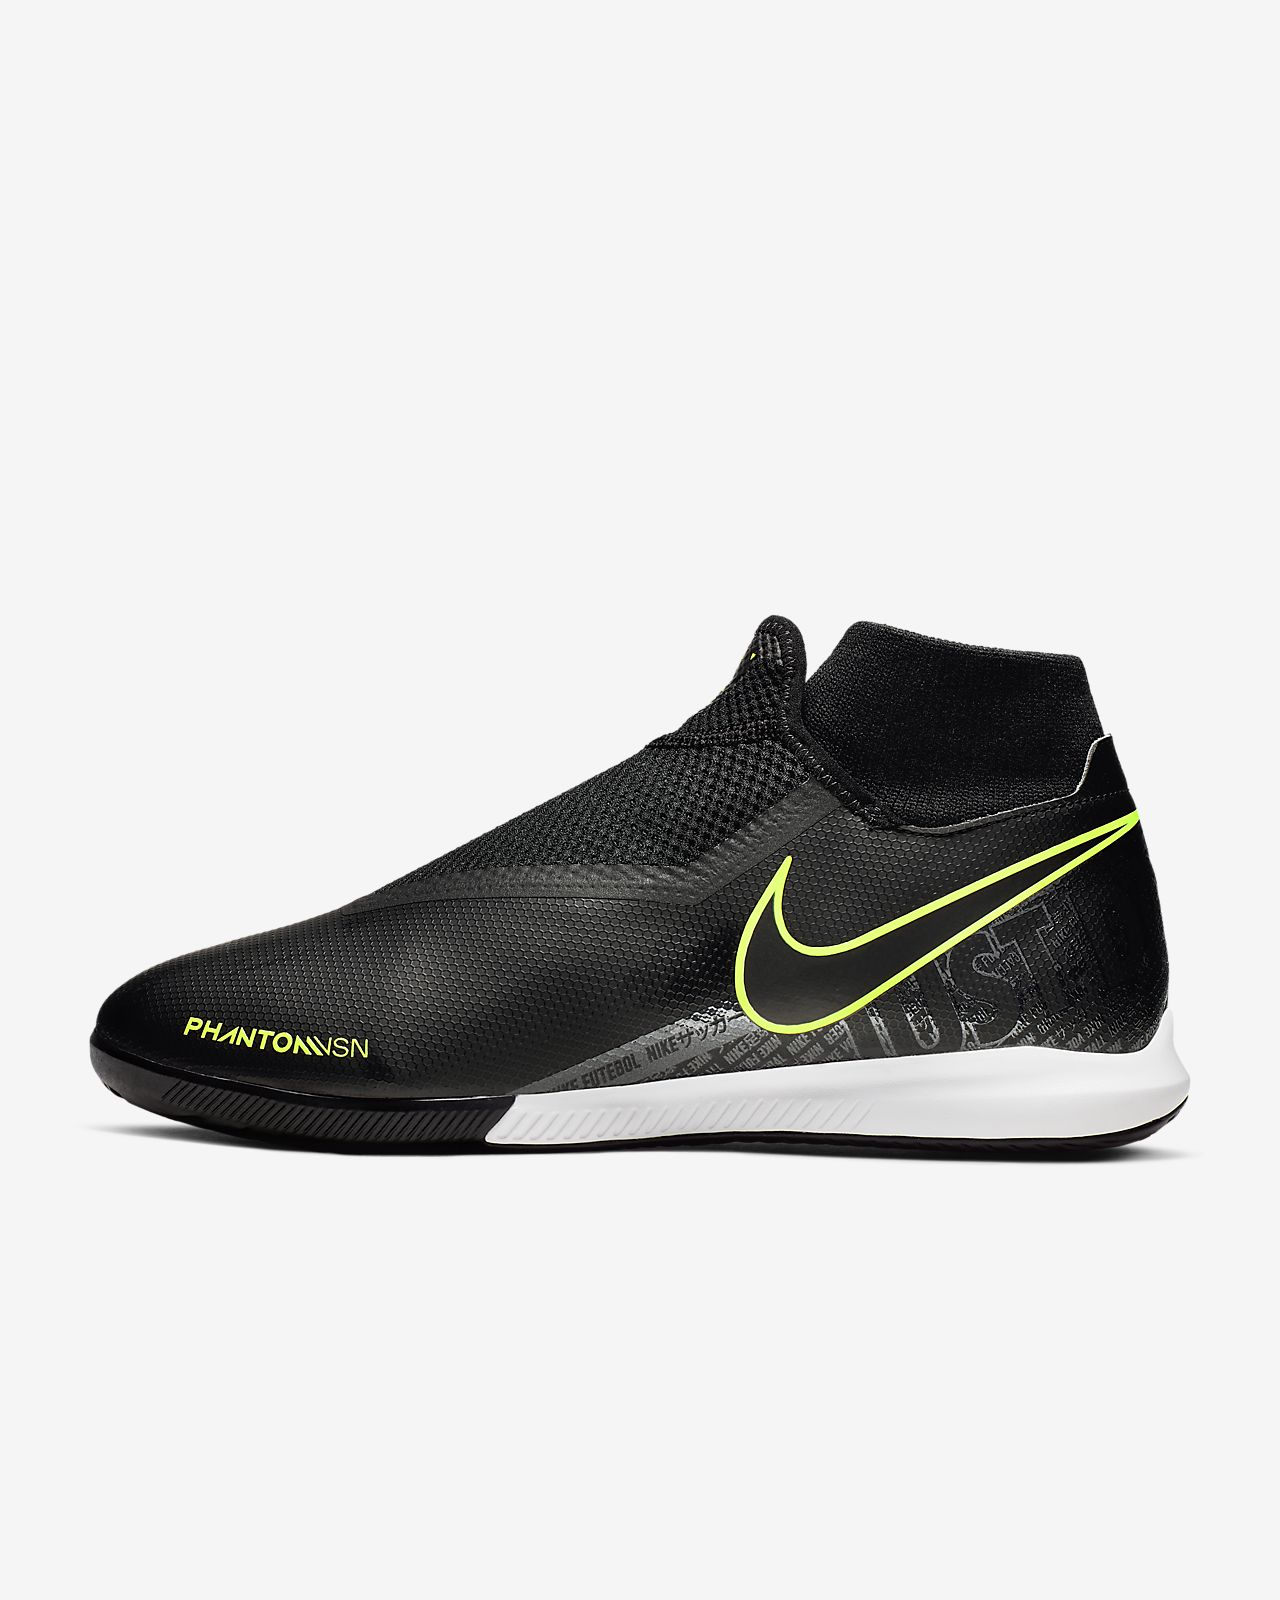 Chaussure Vision Dynamic Academy De Fit Salle Football En Nike Ic Phantom rxBCedo